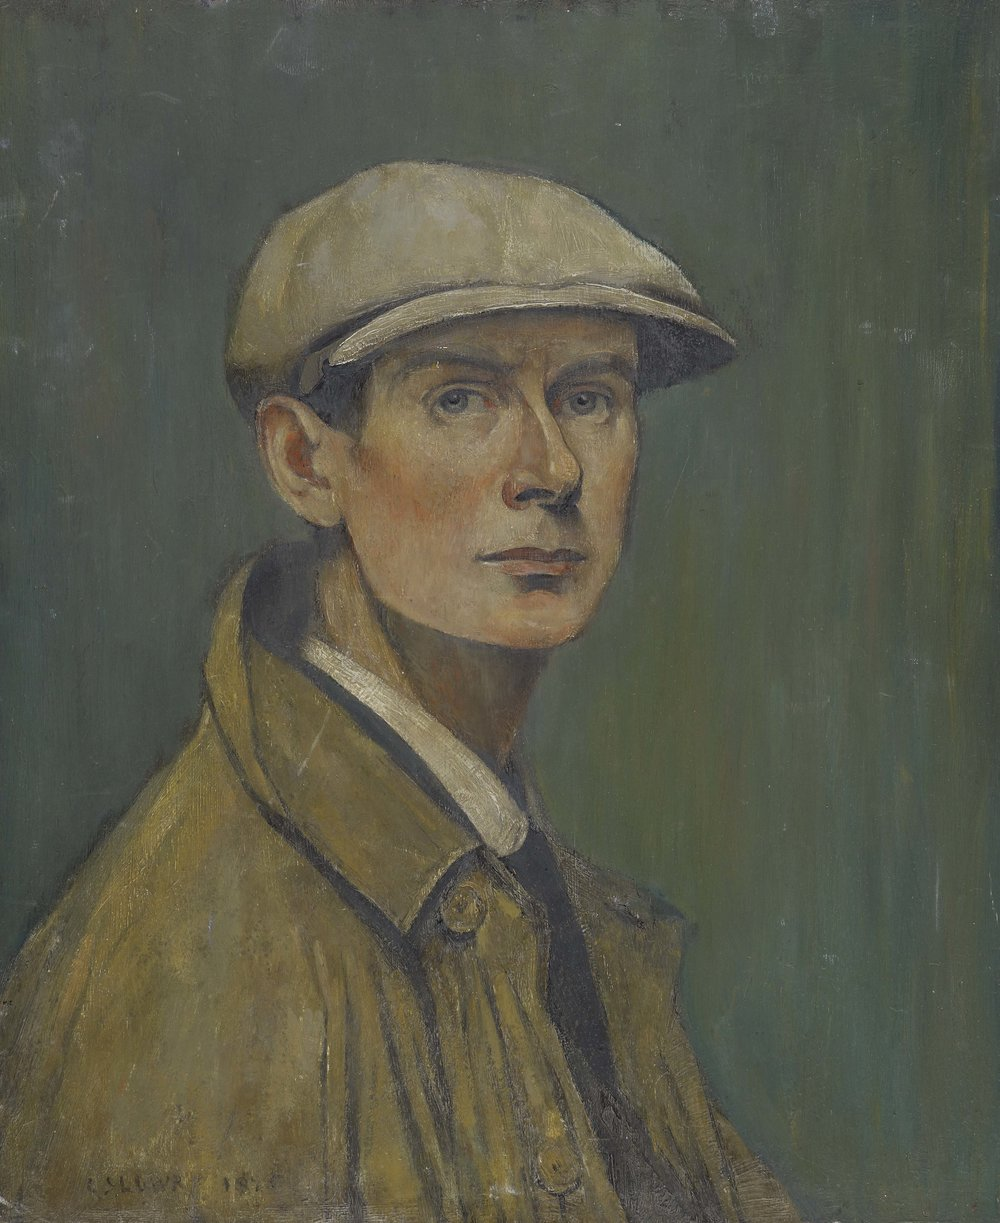 Self Portrait 1925_007508 Credit LS Lowry Self Portrait 1925 © The Lowry Collection, Salford lower-res.jpg